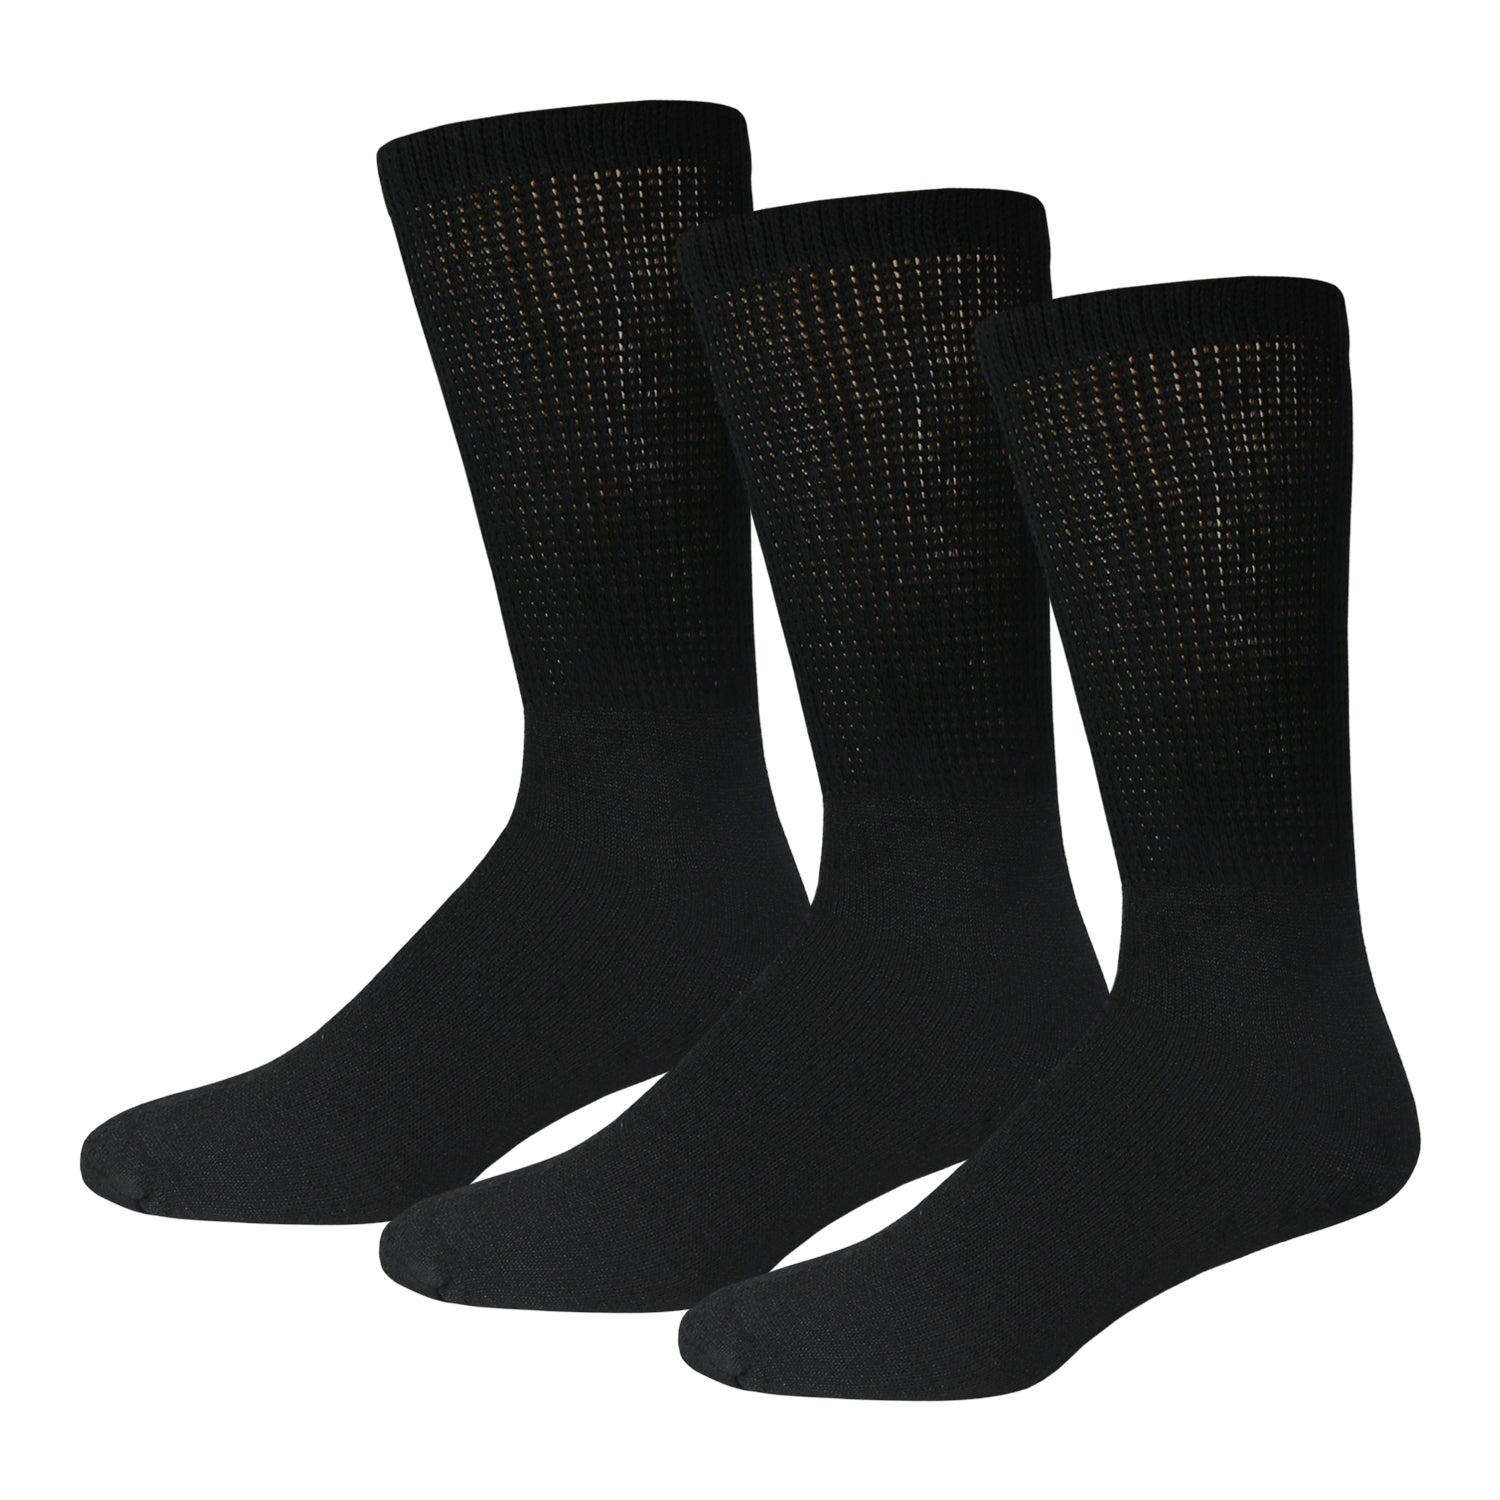 Black Cotton Diabetic Crew Socks With Loose Top 3 Pack